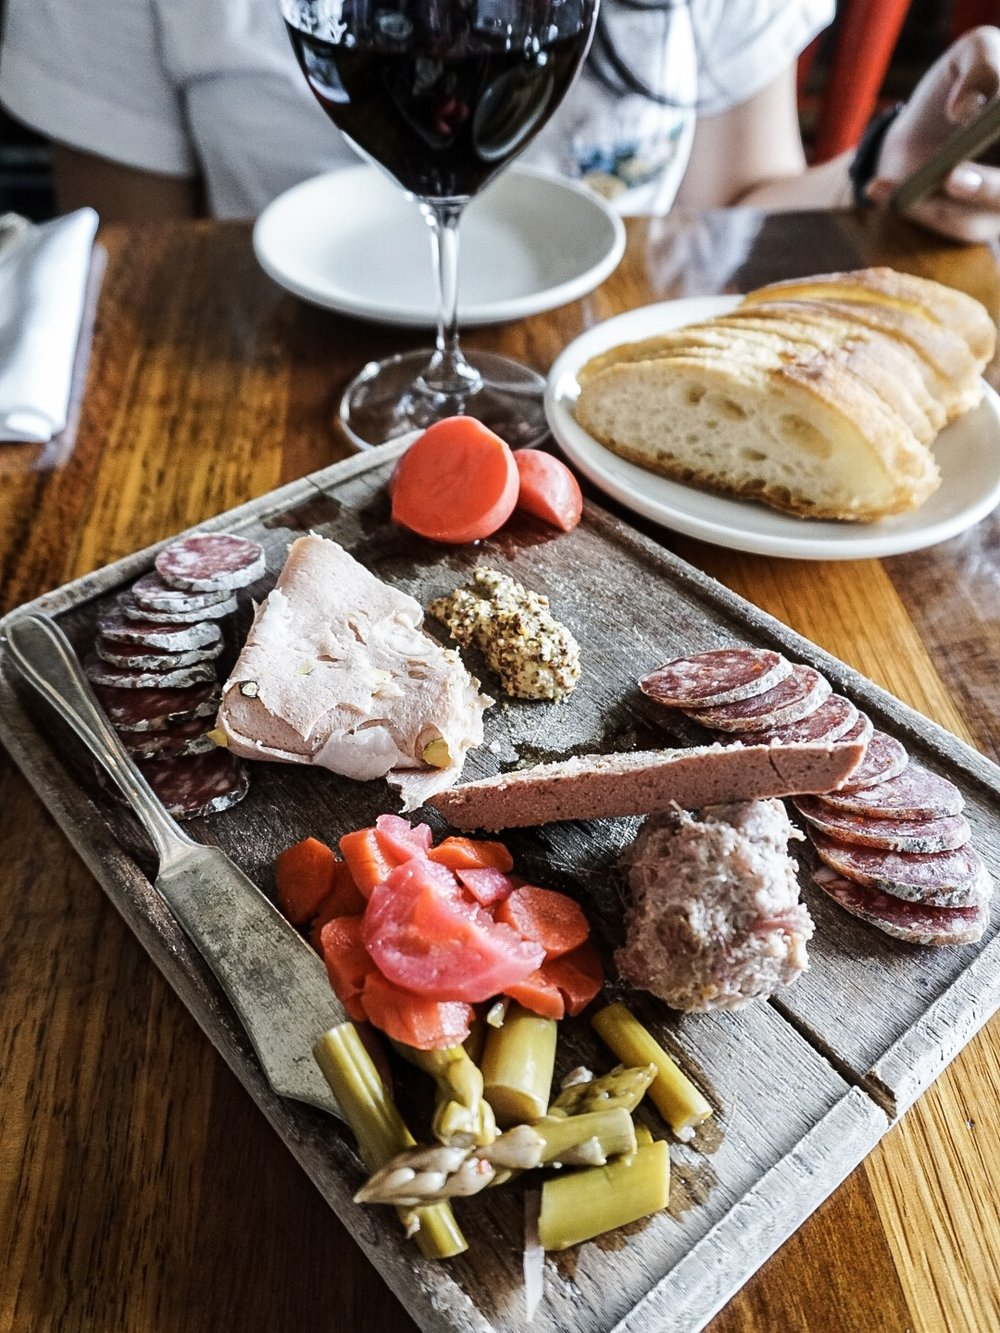 Charcuterie Board at Olympia Provisions